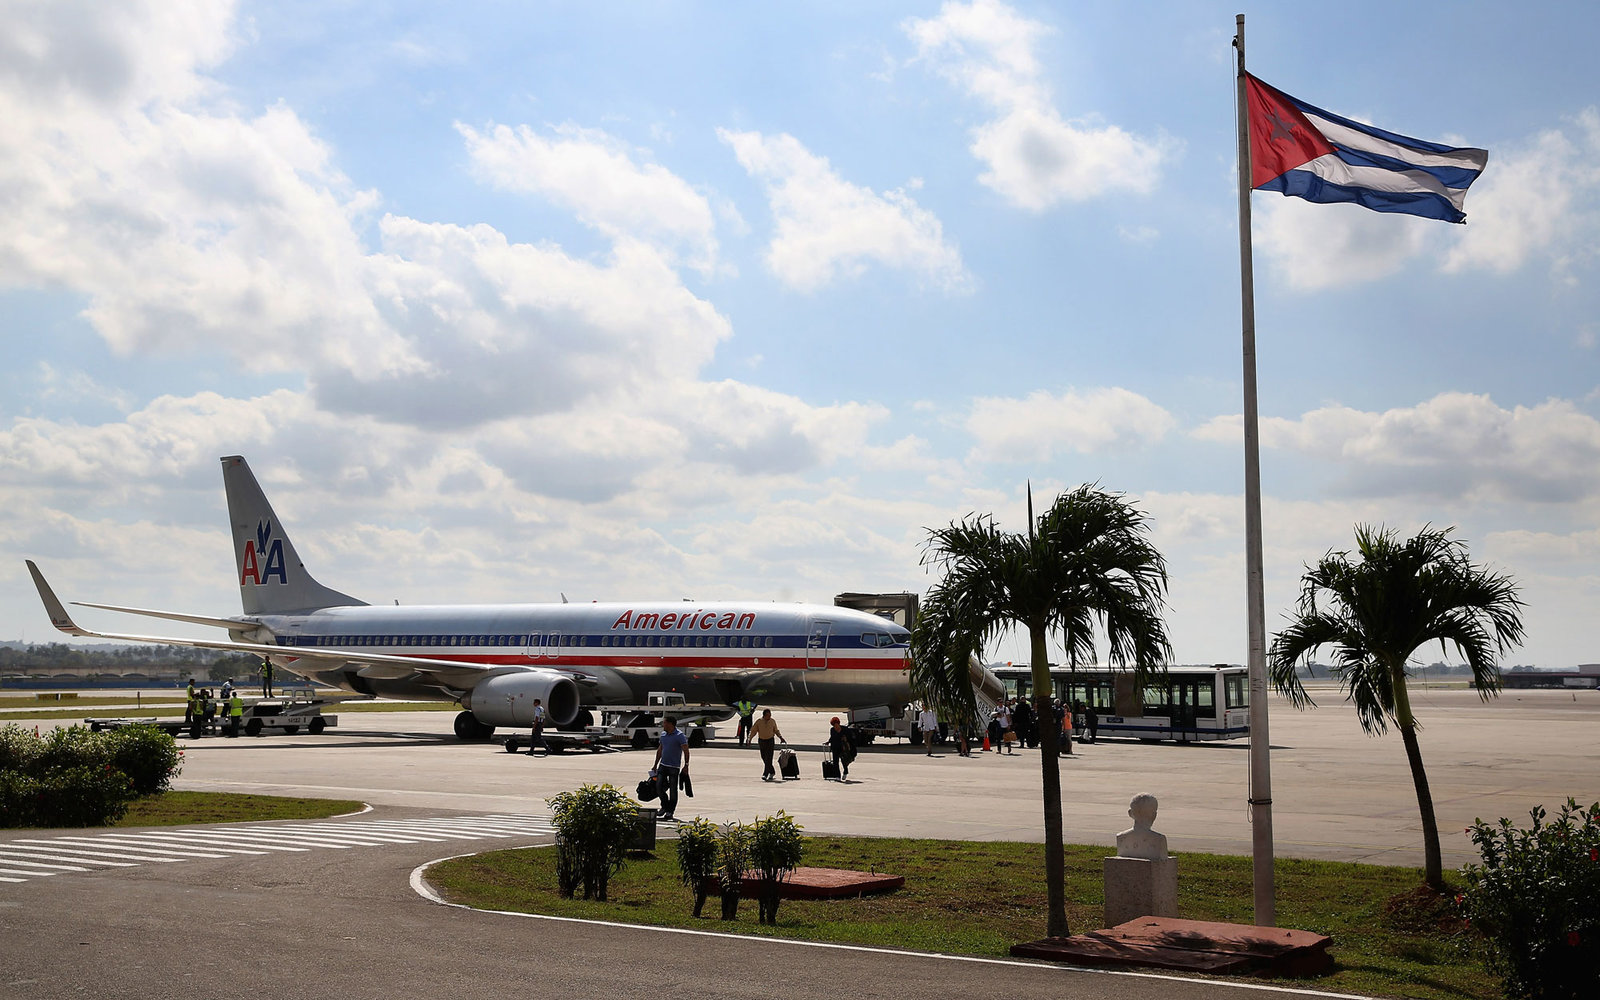 Airlines Travel to Cuba